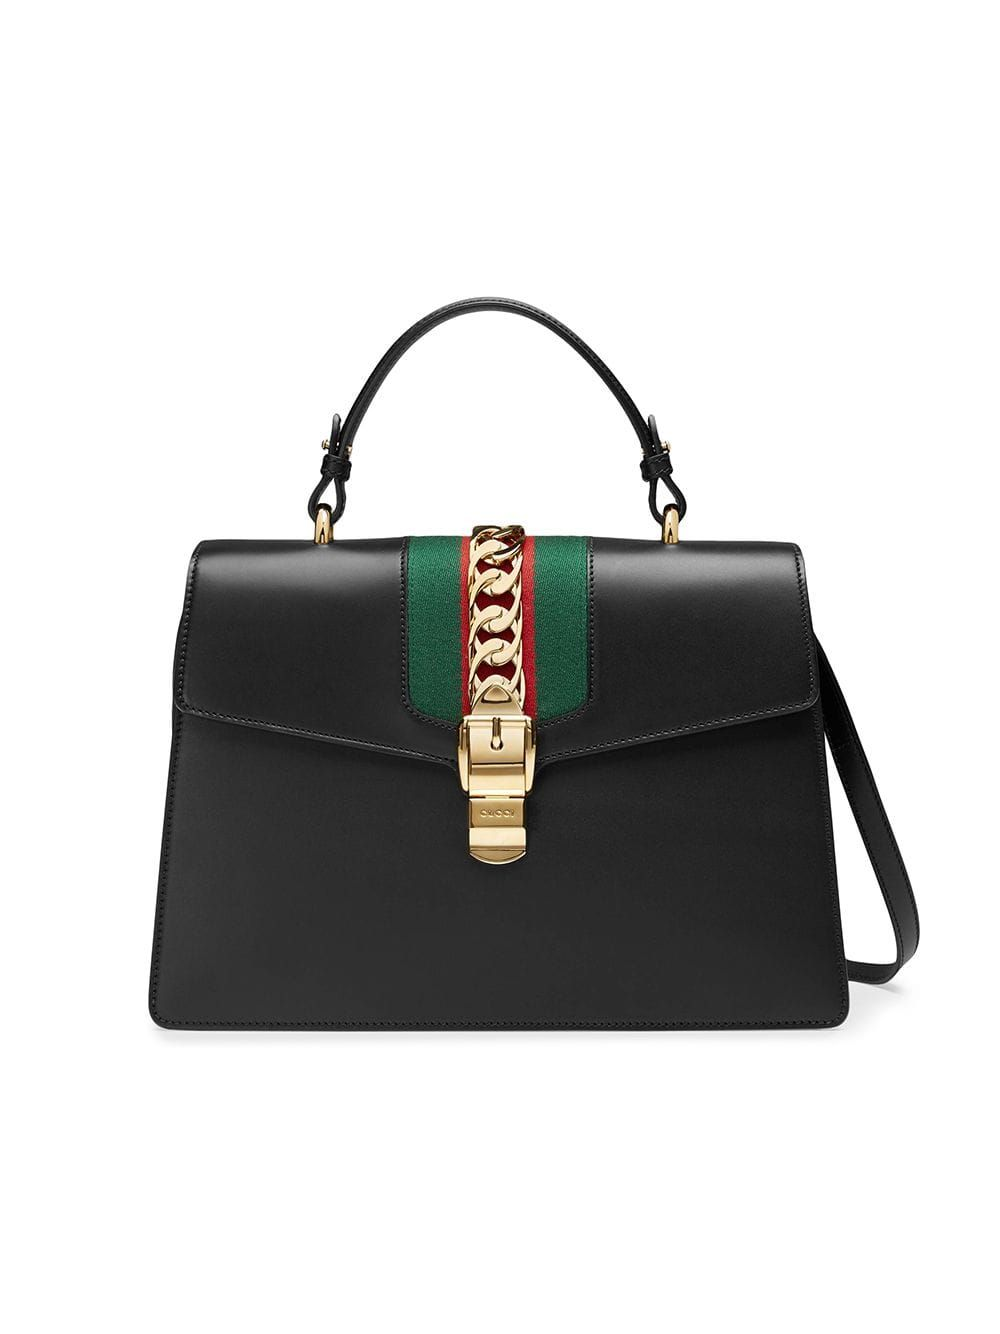 d0a8f27538d5c1 Gucci Sylvie leather top handle bag - Black in 2019 | Products ...